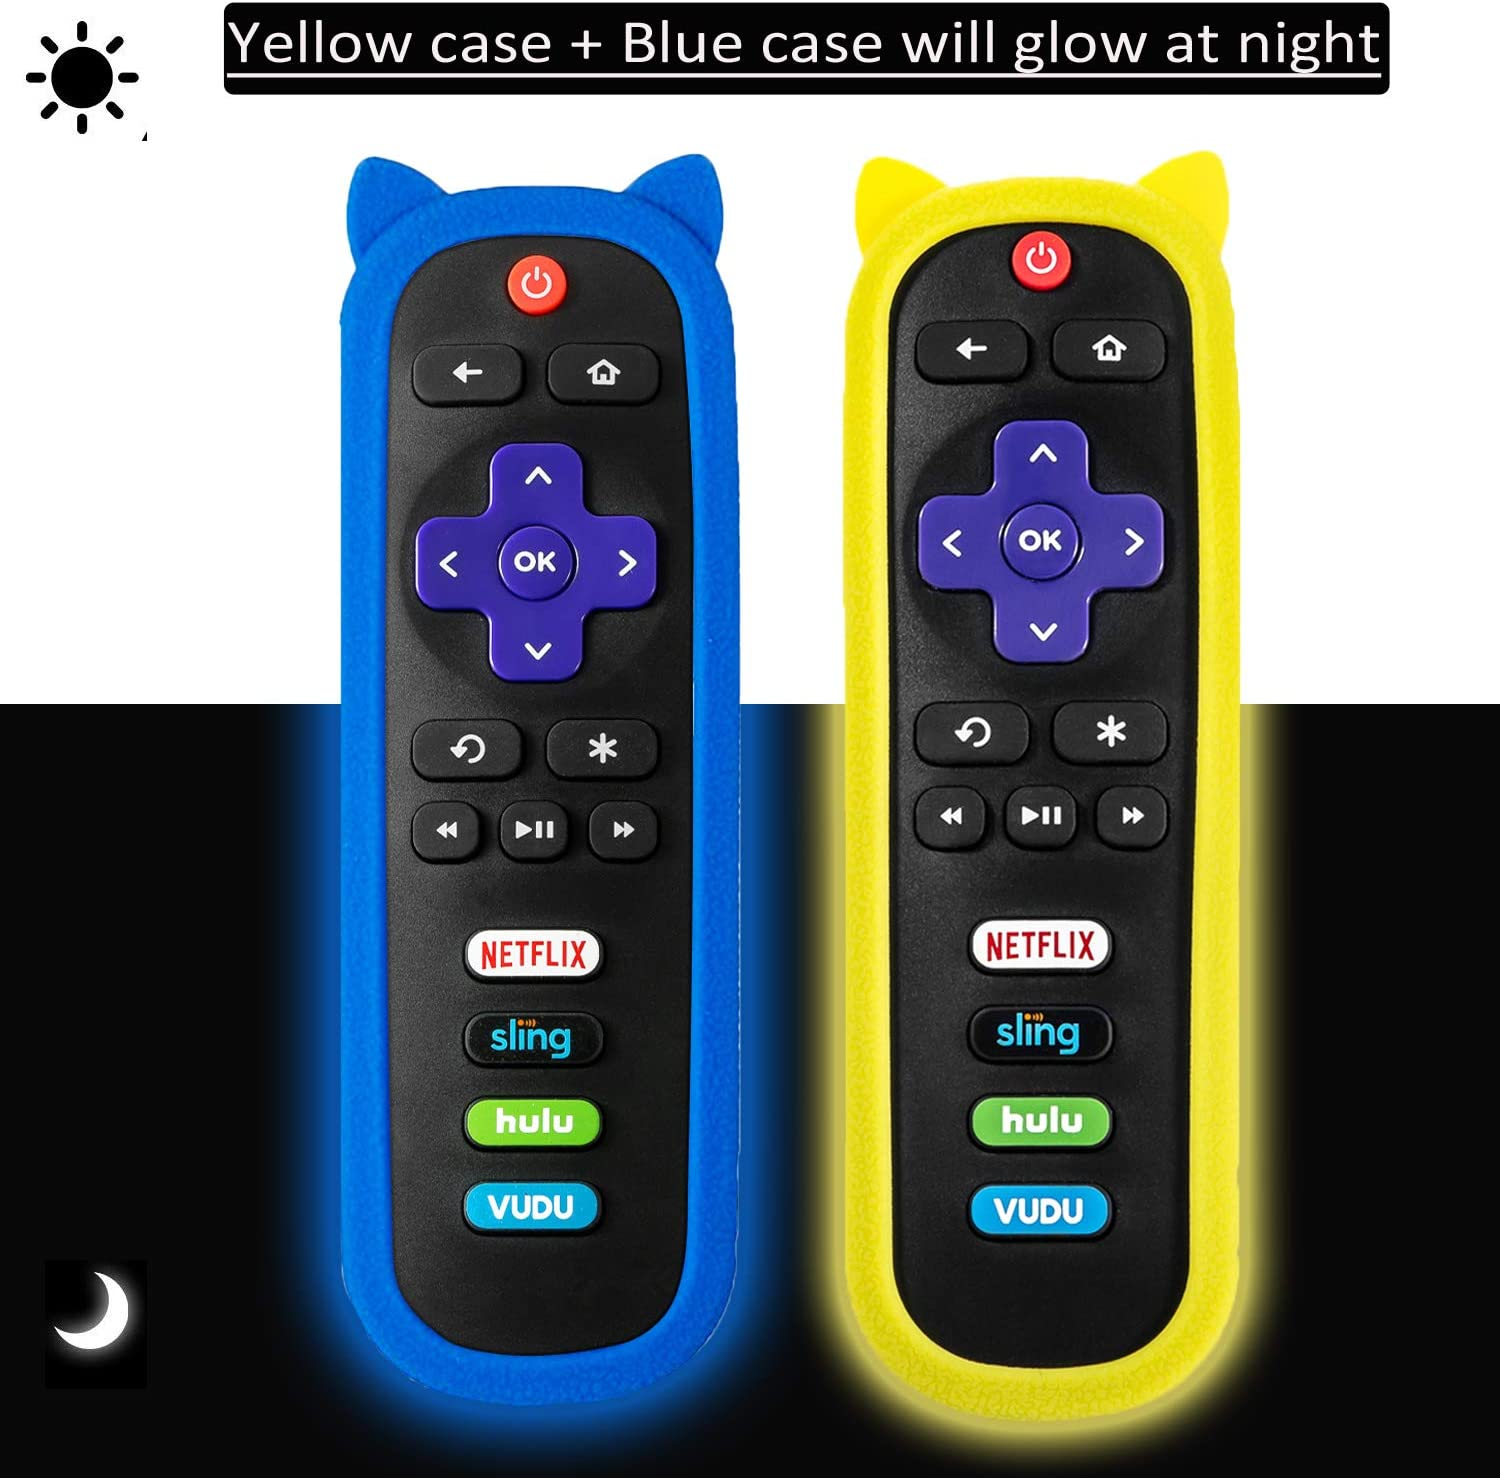 (2 Pack) Universal Protective Remote Case/Cover for Roku Streaming Stick 3600R /TCL/ONN/Sharp/Insignia/Hisense/Toshiba/LG/Hitachi Roku TV Remote, Shock Proof Silicone Remote Control Cover - Glow Case